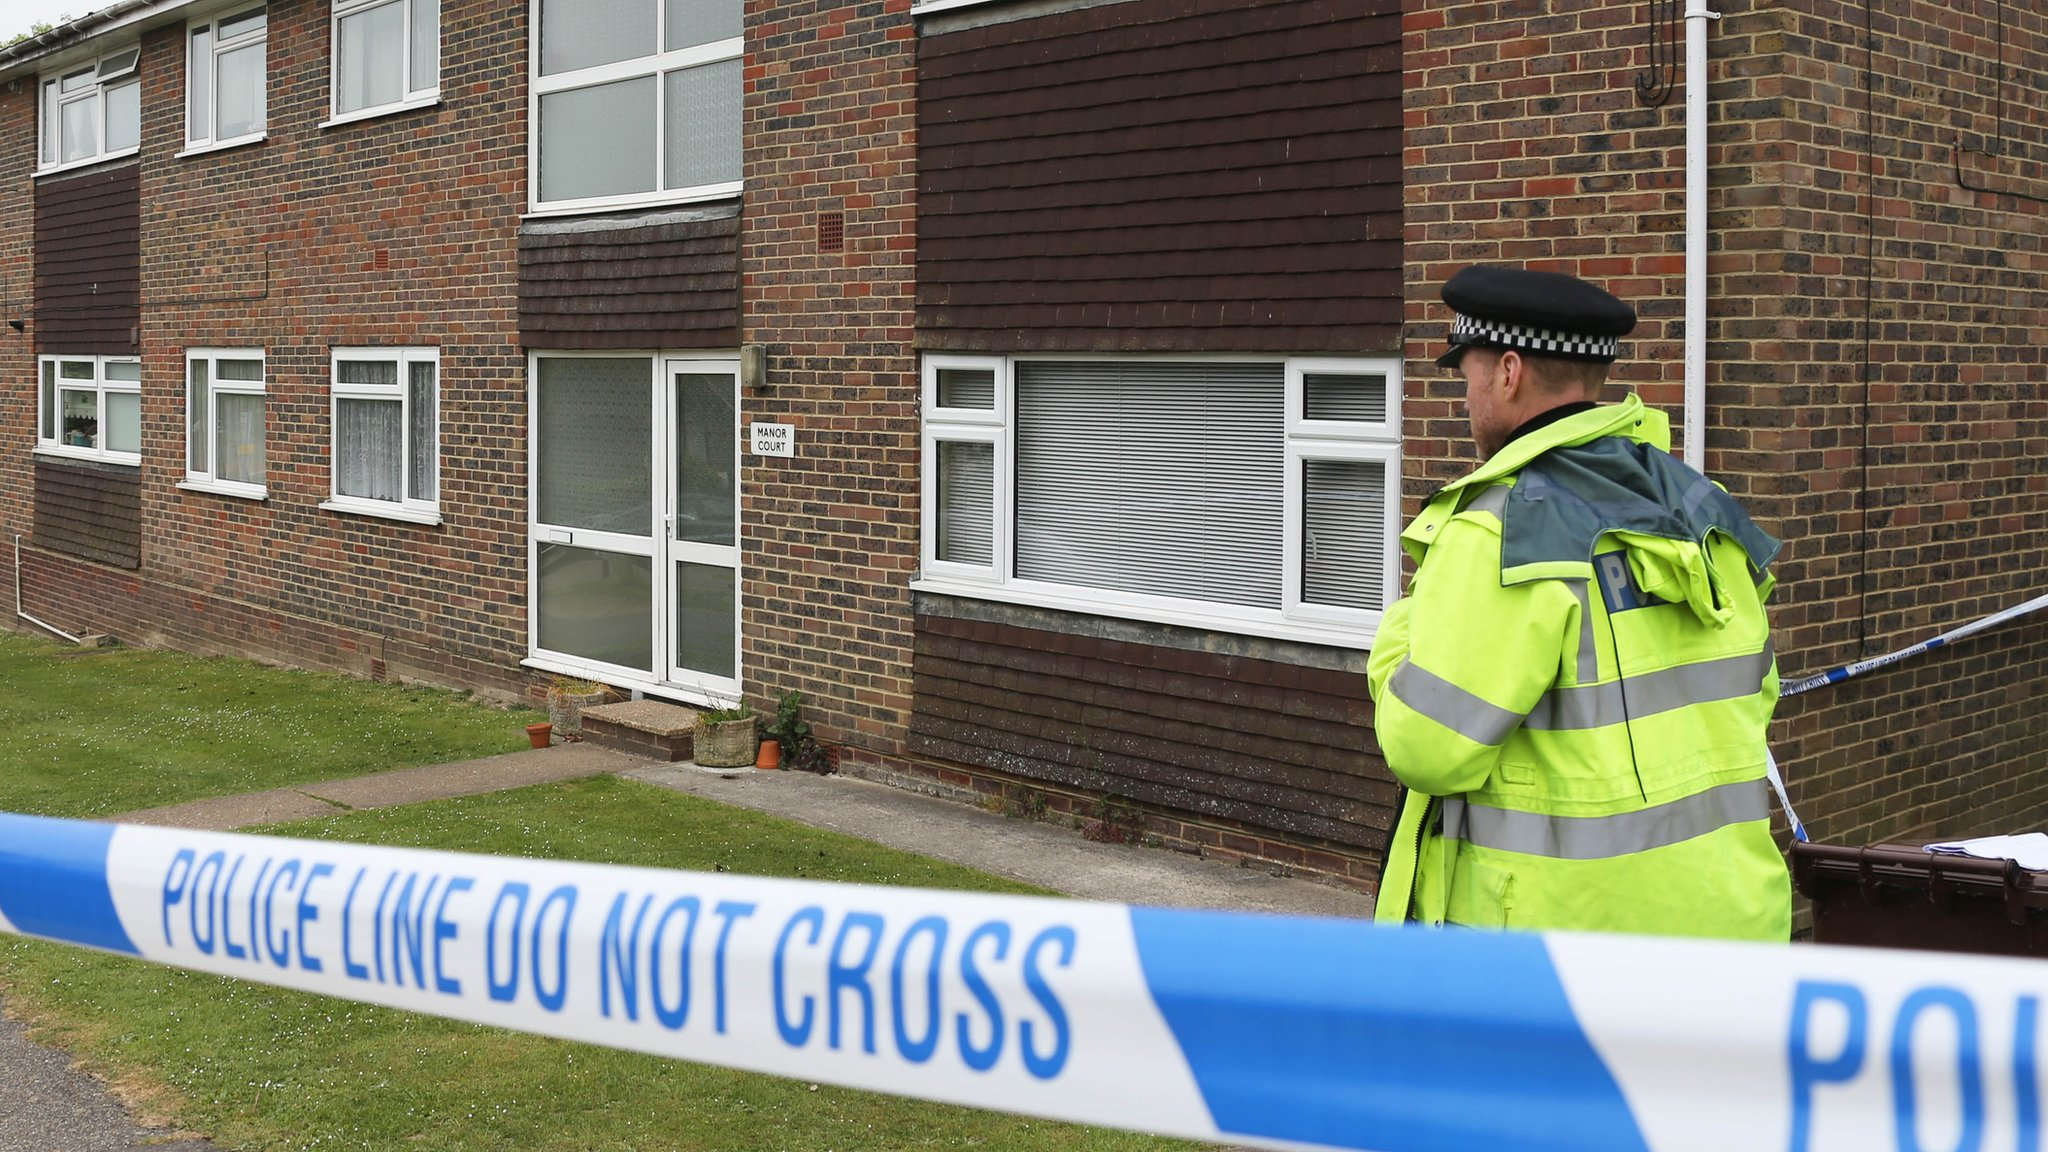 Sussex murder probe after woman's body found in flat